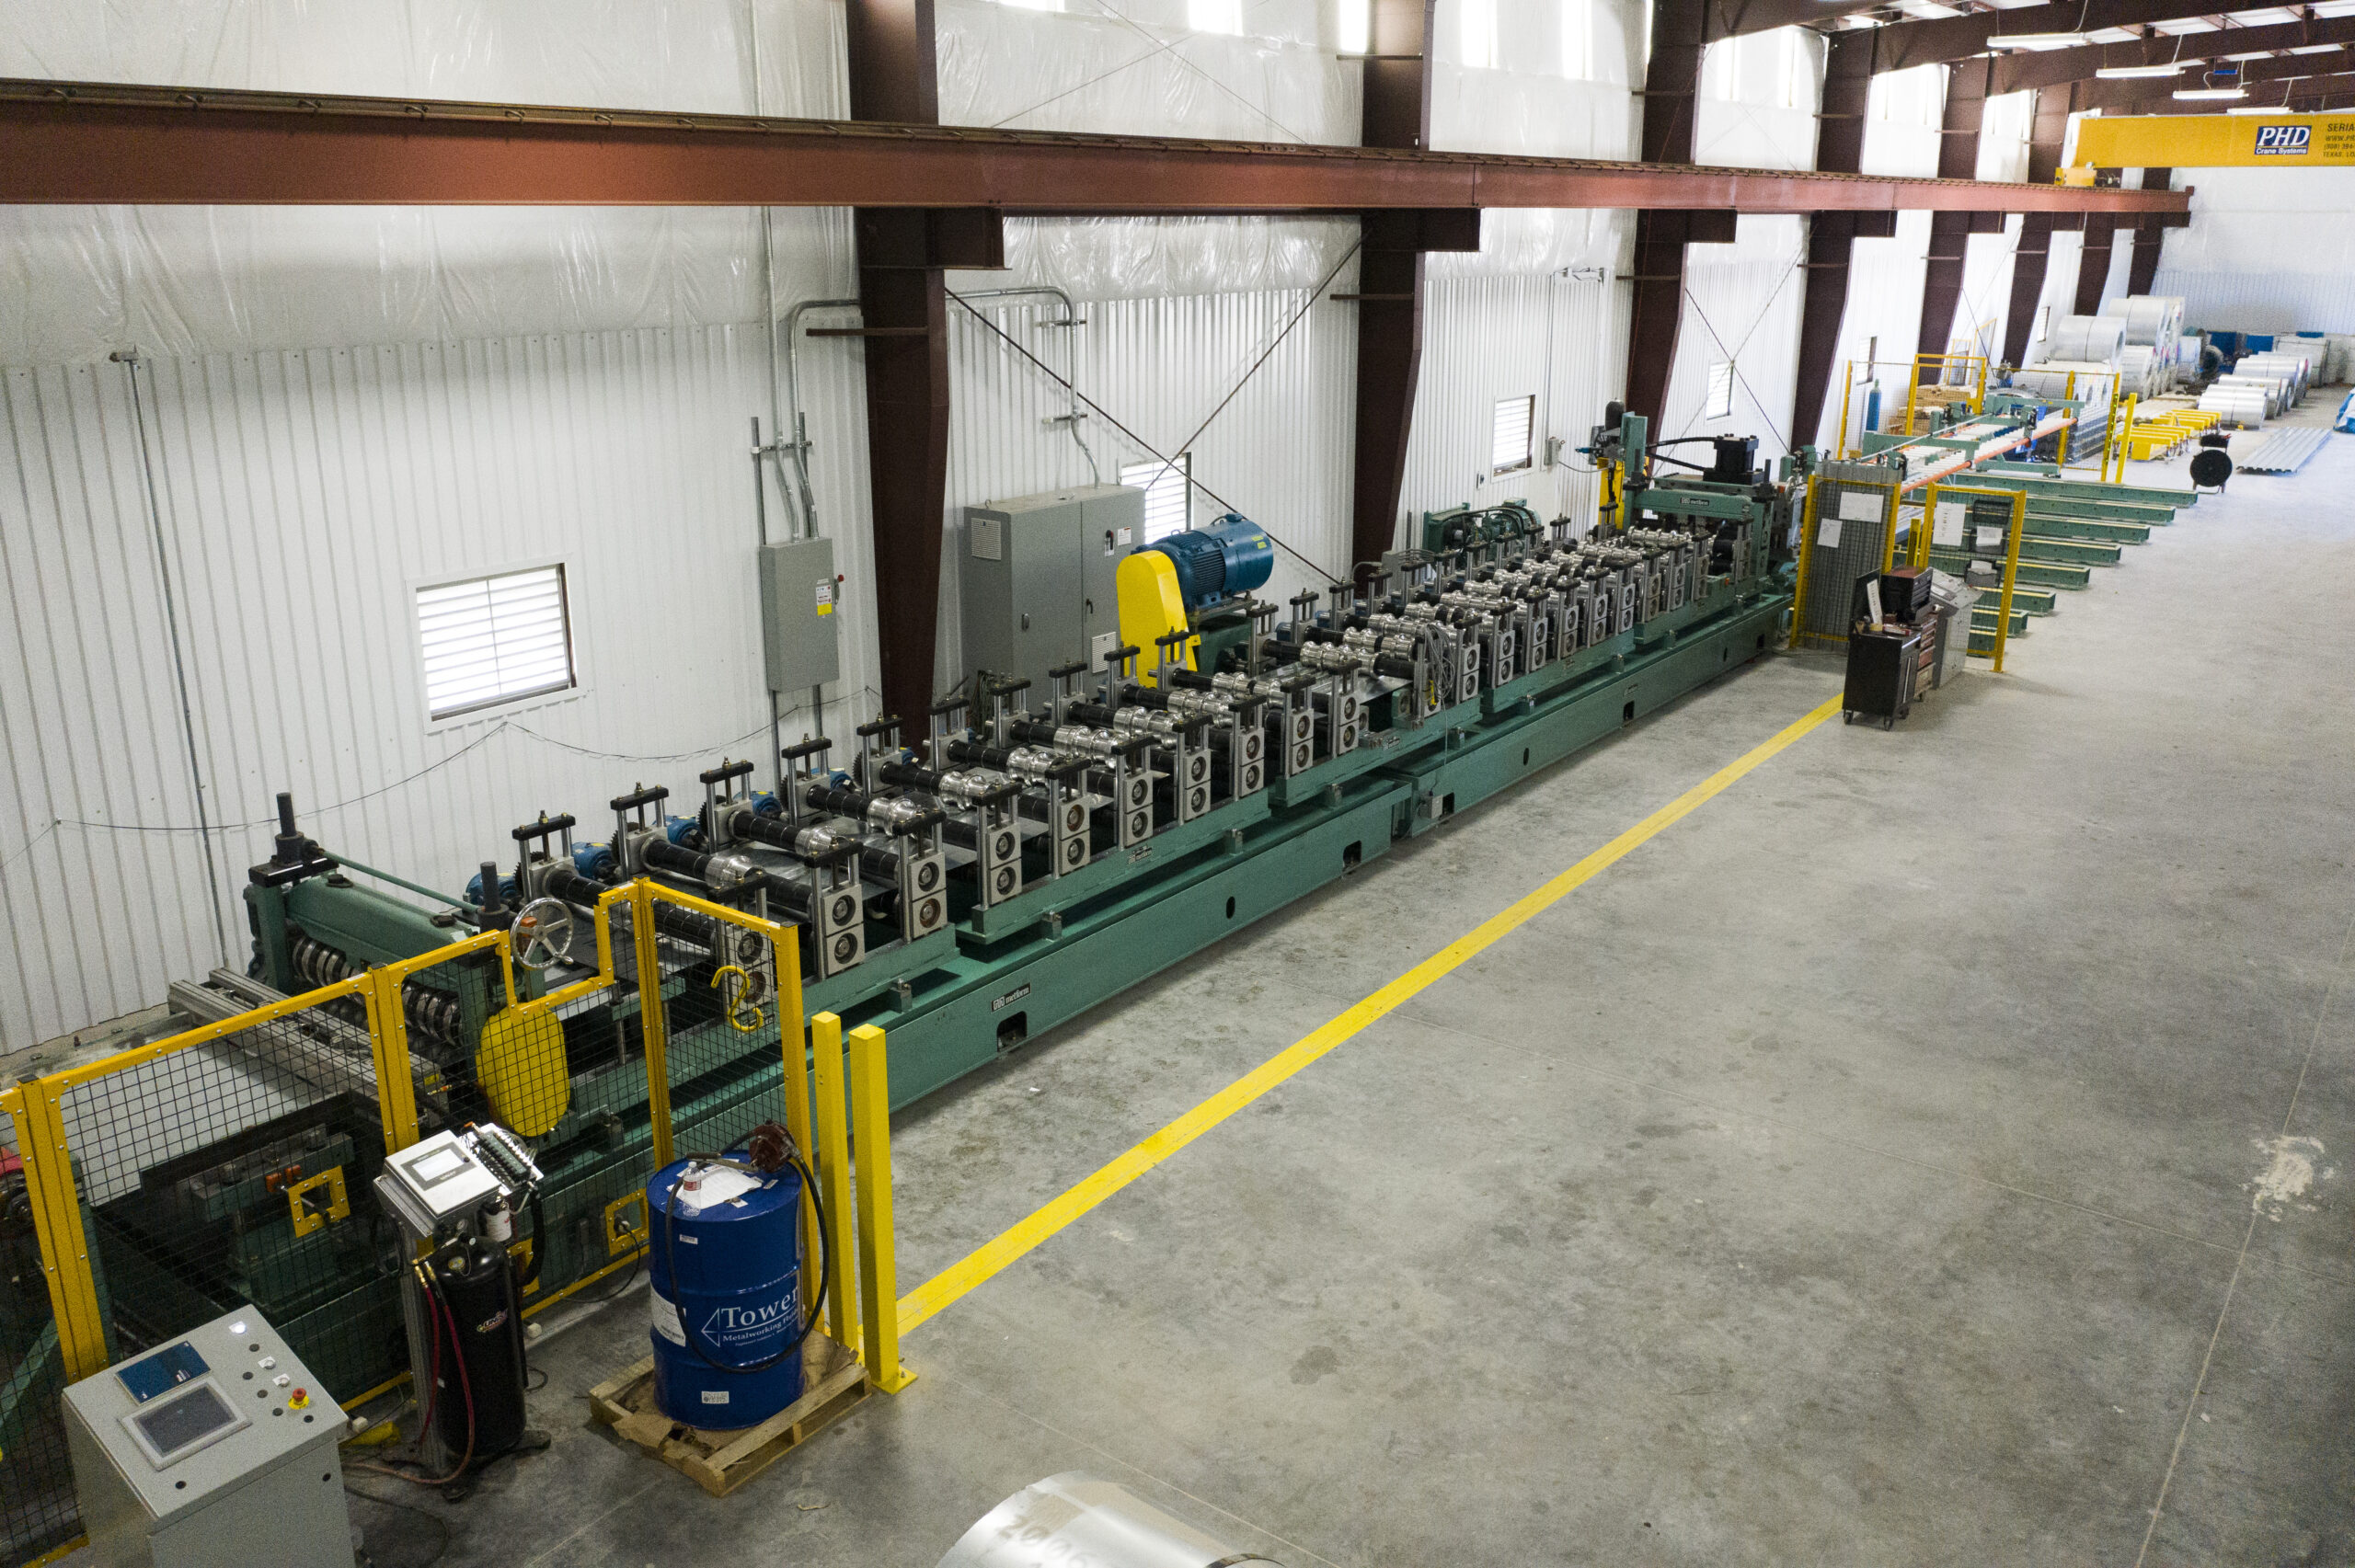 csm's metal deck manufacturing equipment in their warehouse facility